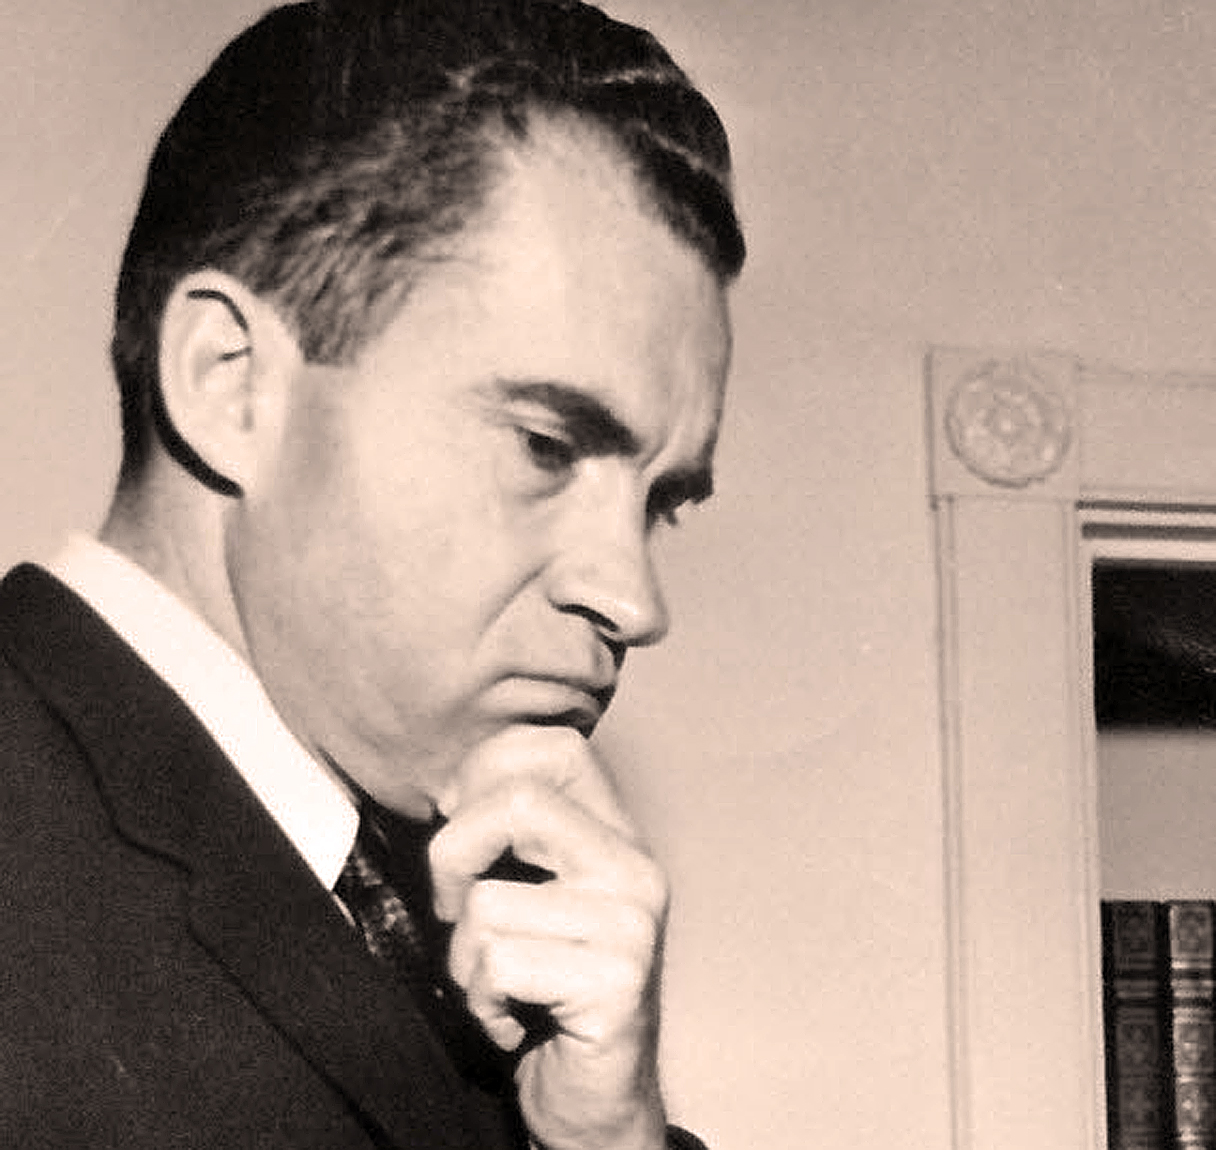 February 21, 1958 – Nixon's Maybe Mission To Moscow